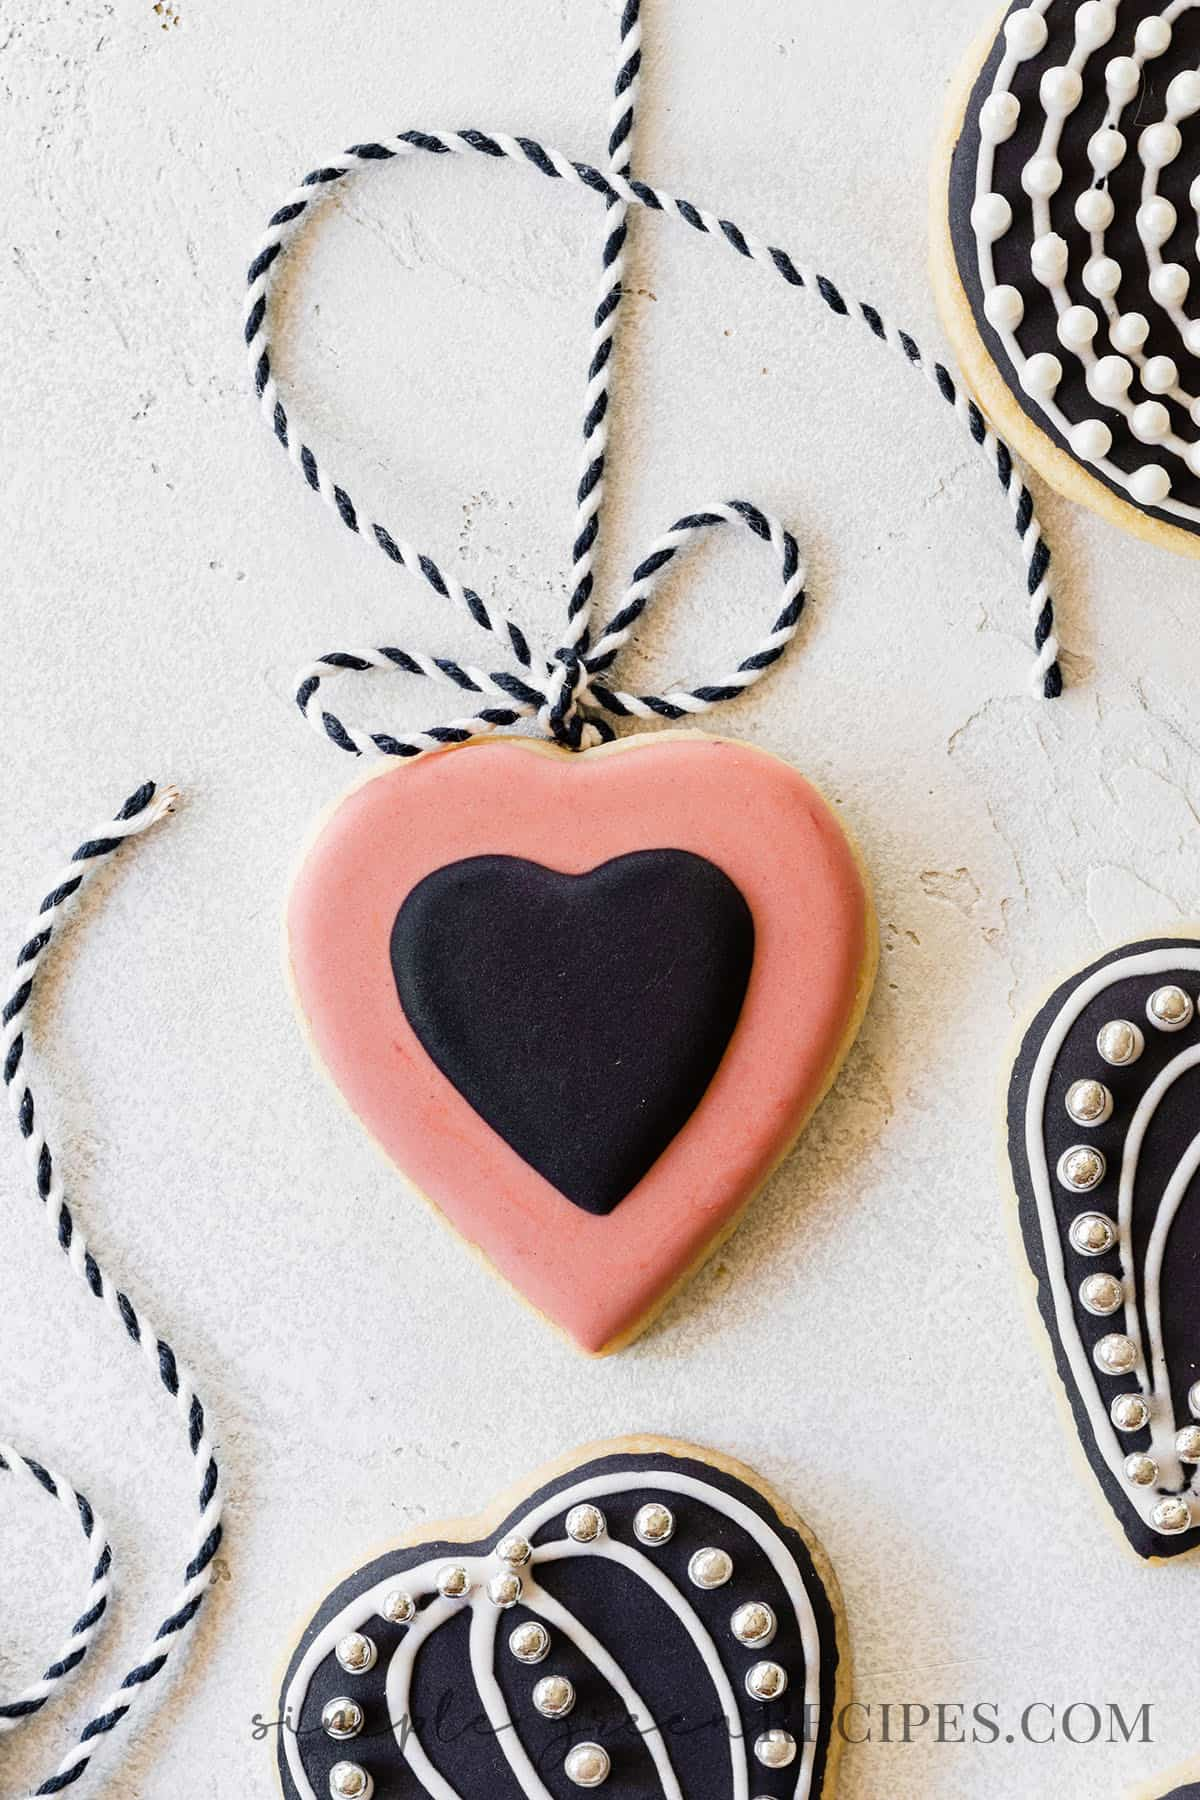 heart shaped sugar cookie decorated with pink and black royal icing, tied to a black and white string.